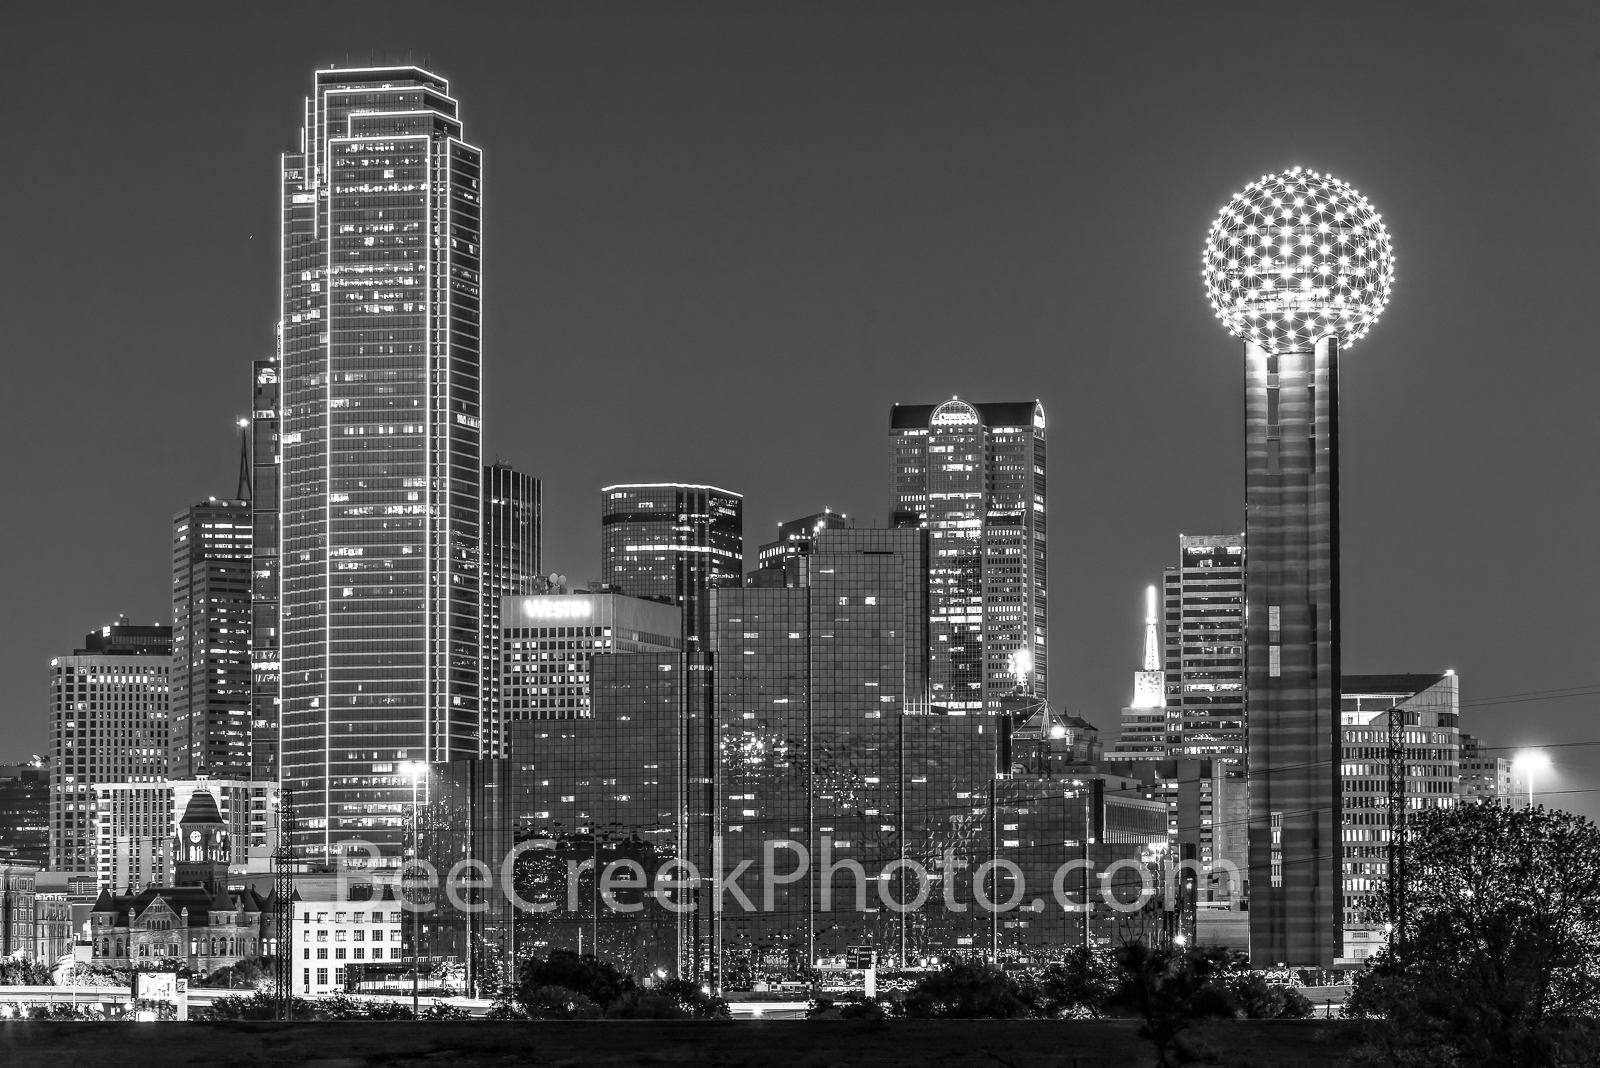 Dallas skyline in B W - Another capture of the wonderful Dallas skyline in downtown in black and white.